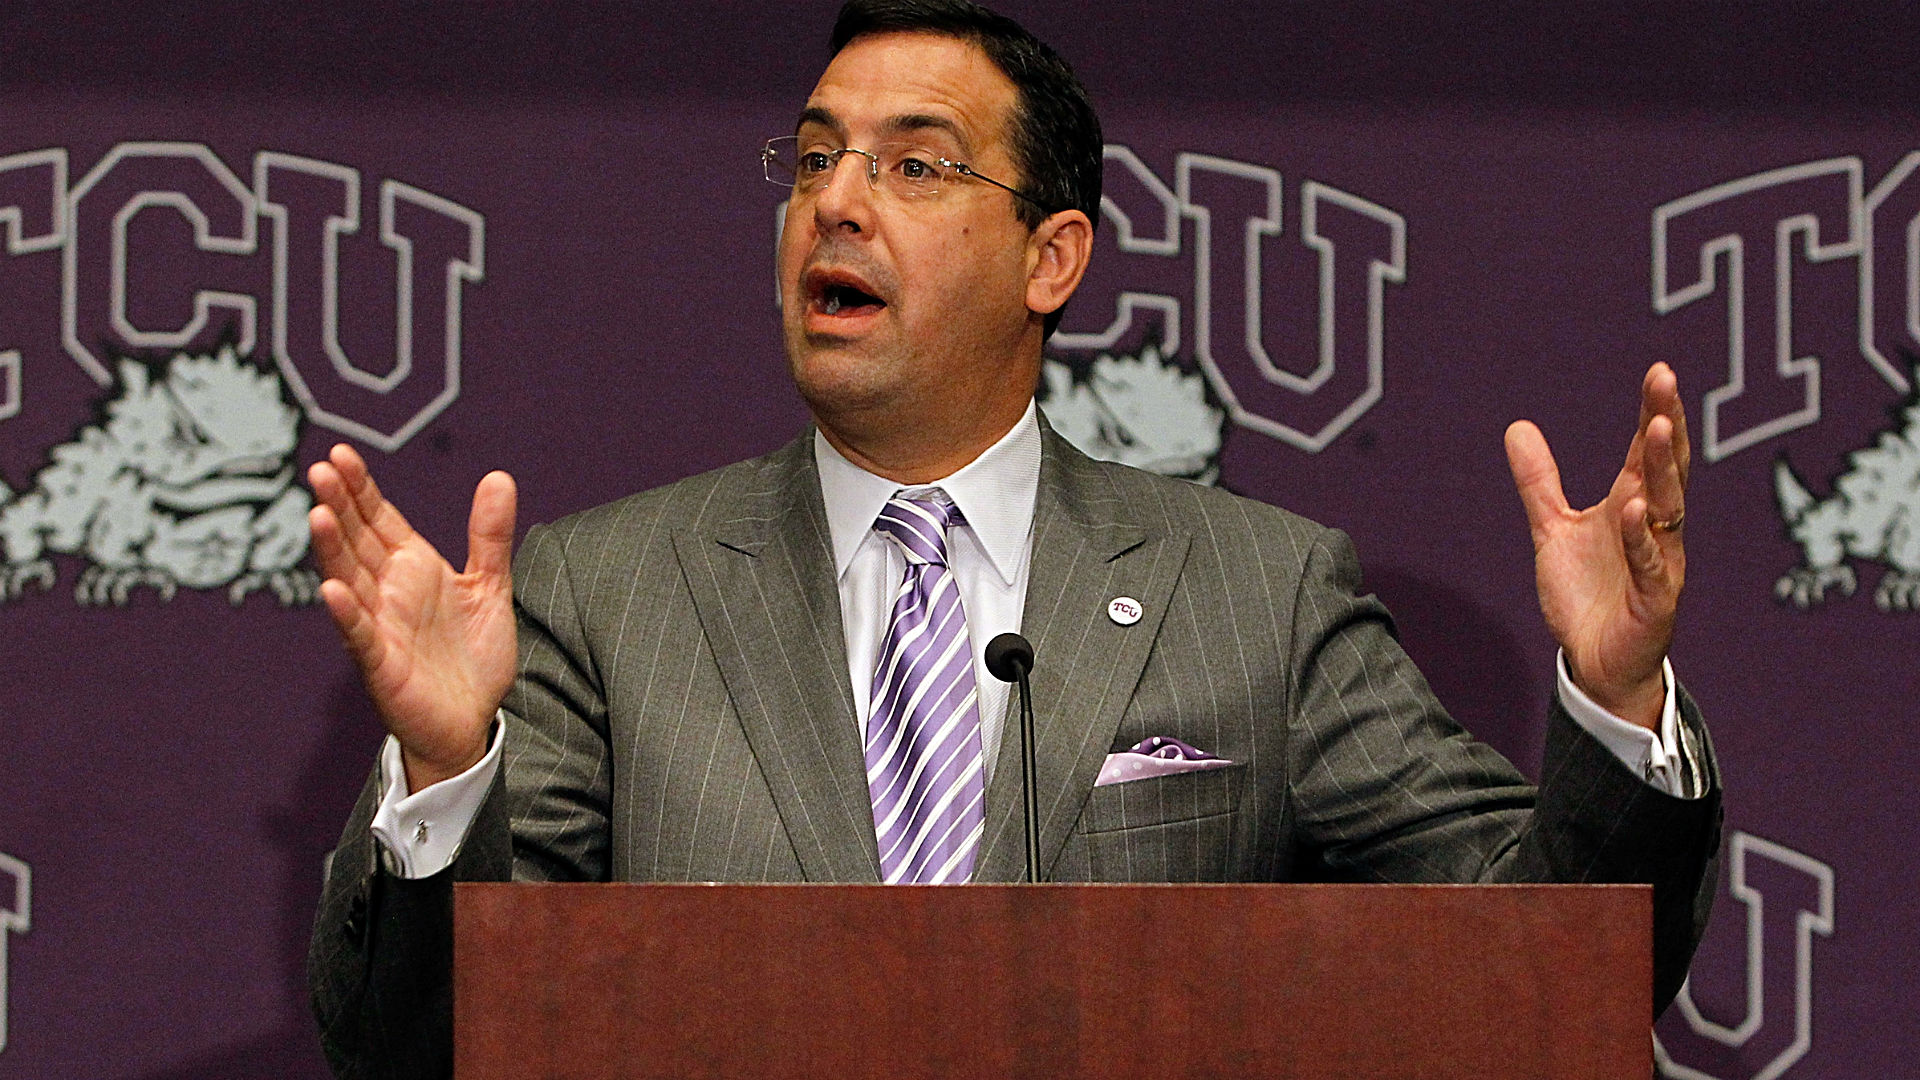 Chris Del Conte Leaves TCU to Become Athletic Director at Texas